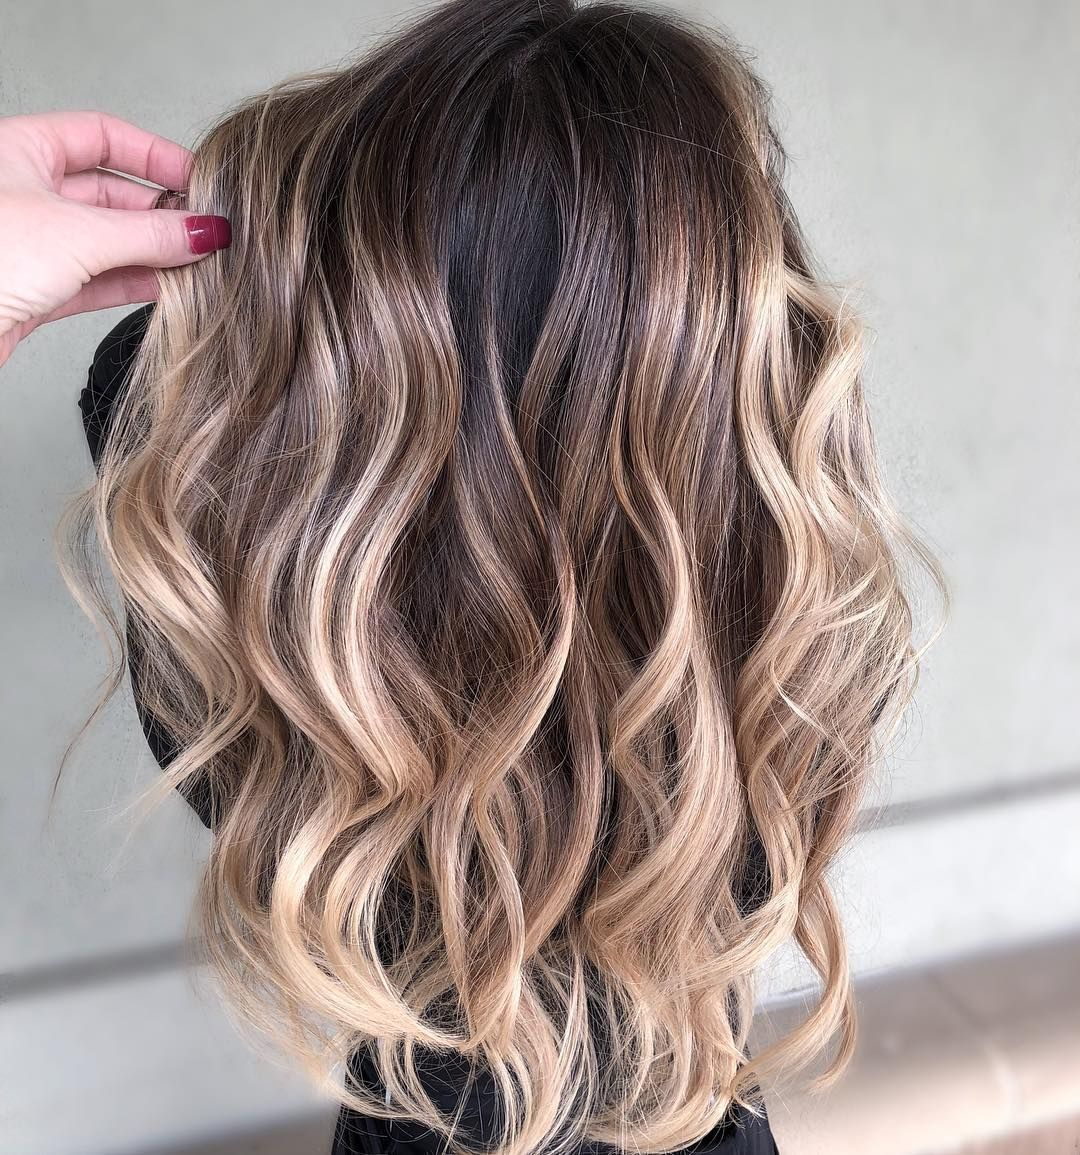 Low Maintenance 2020 Hair Trends Color Monica Gallery In 2020 Dark Blonde Hair Color Low Maintenance Hair Easy Hair Color